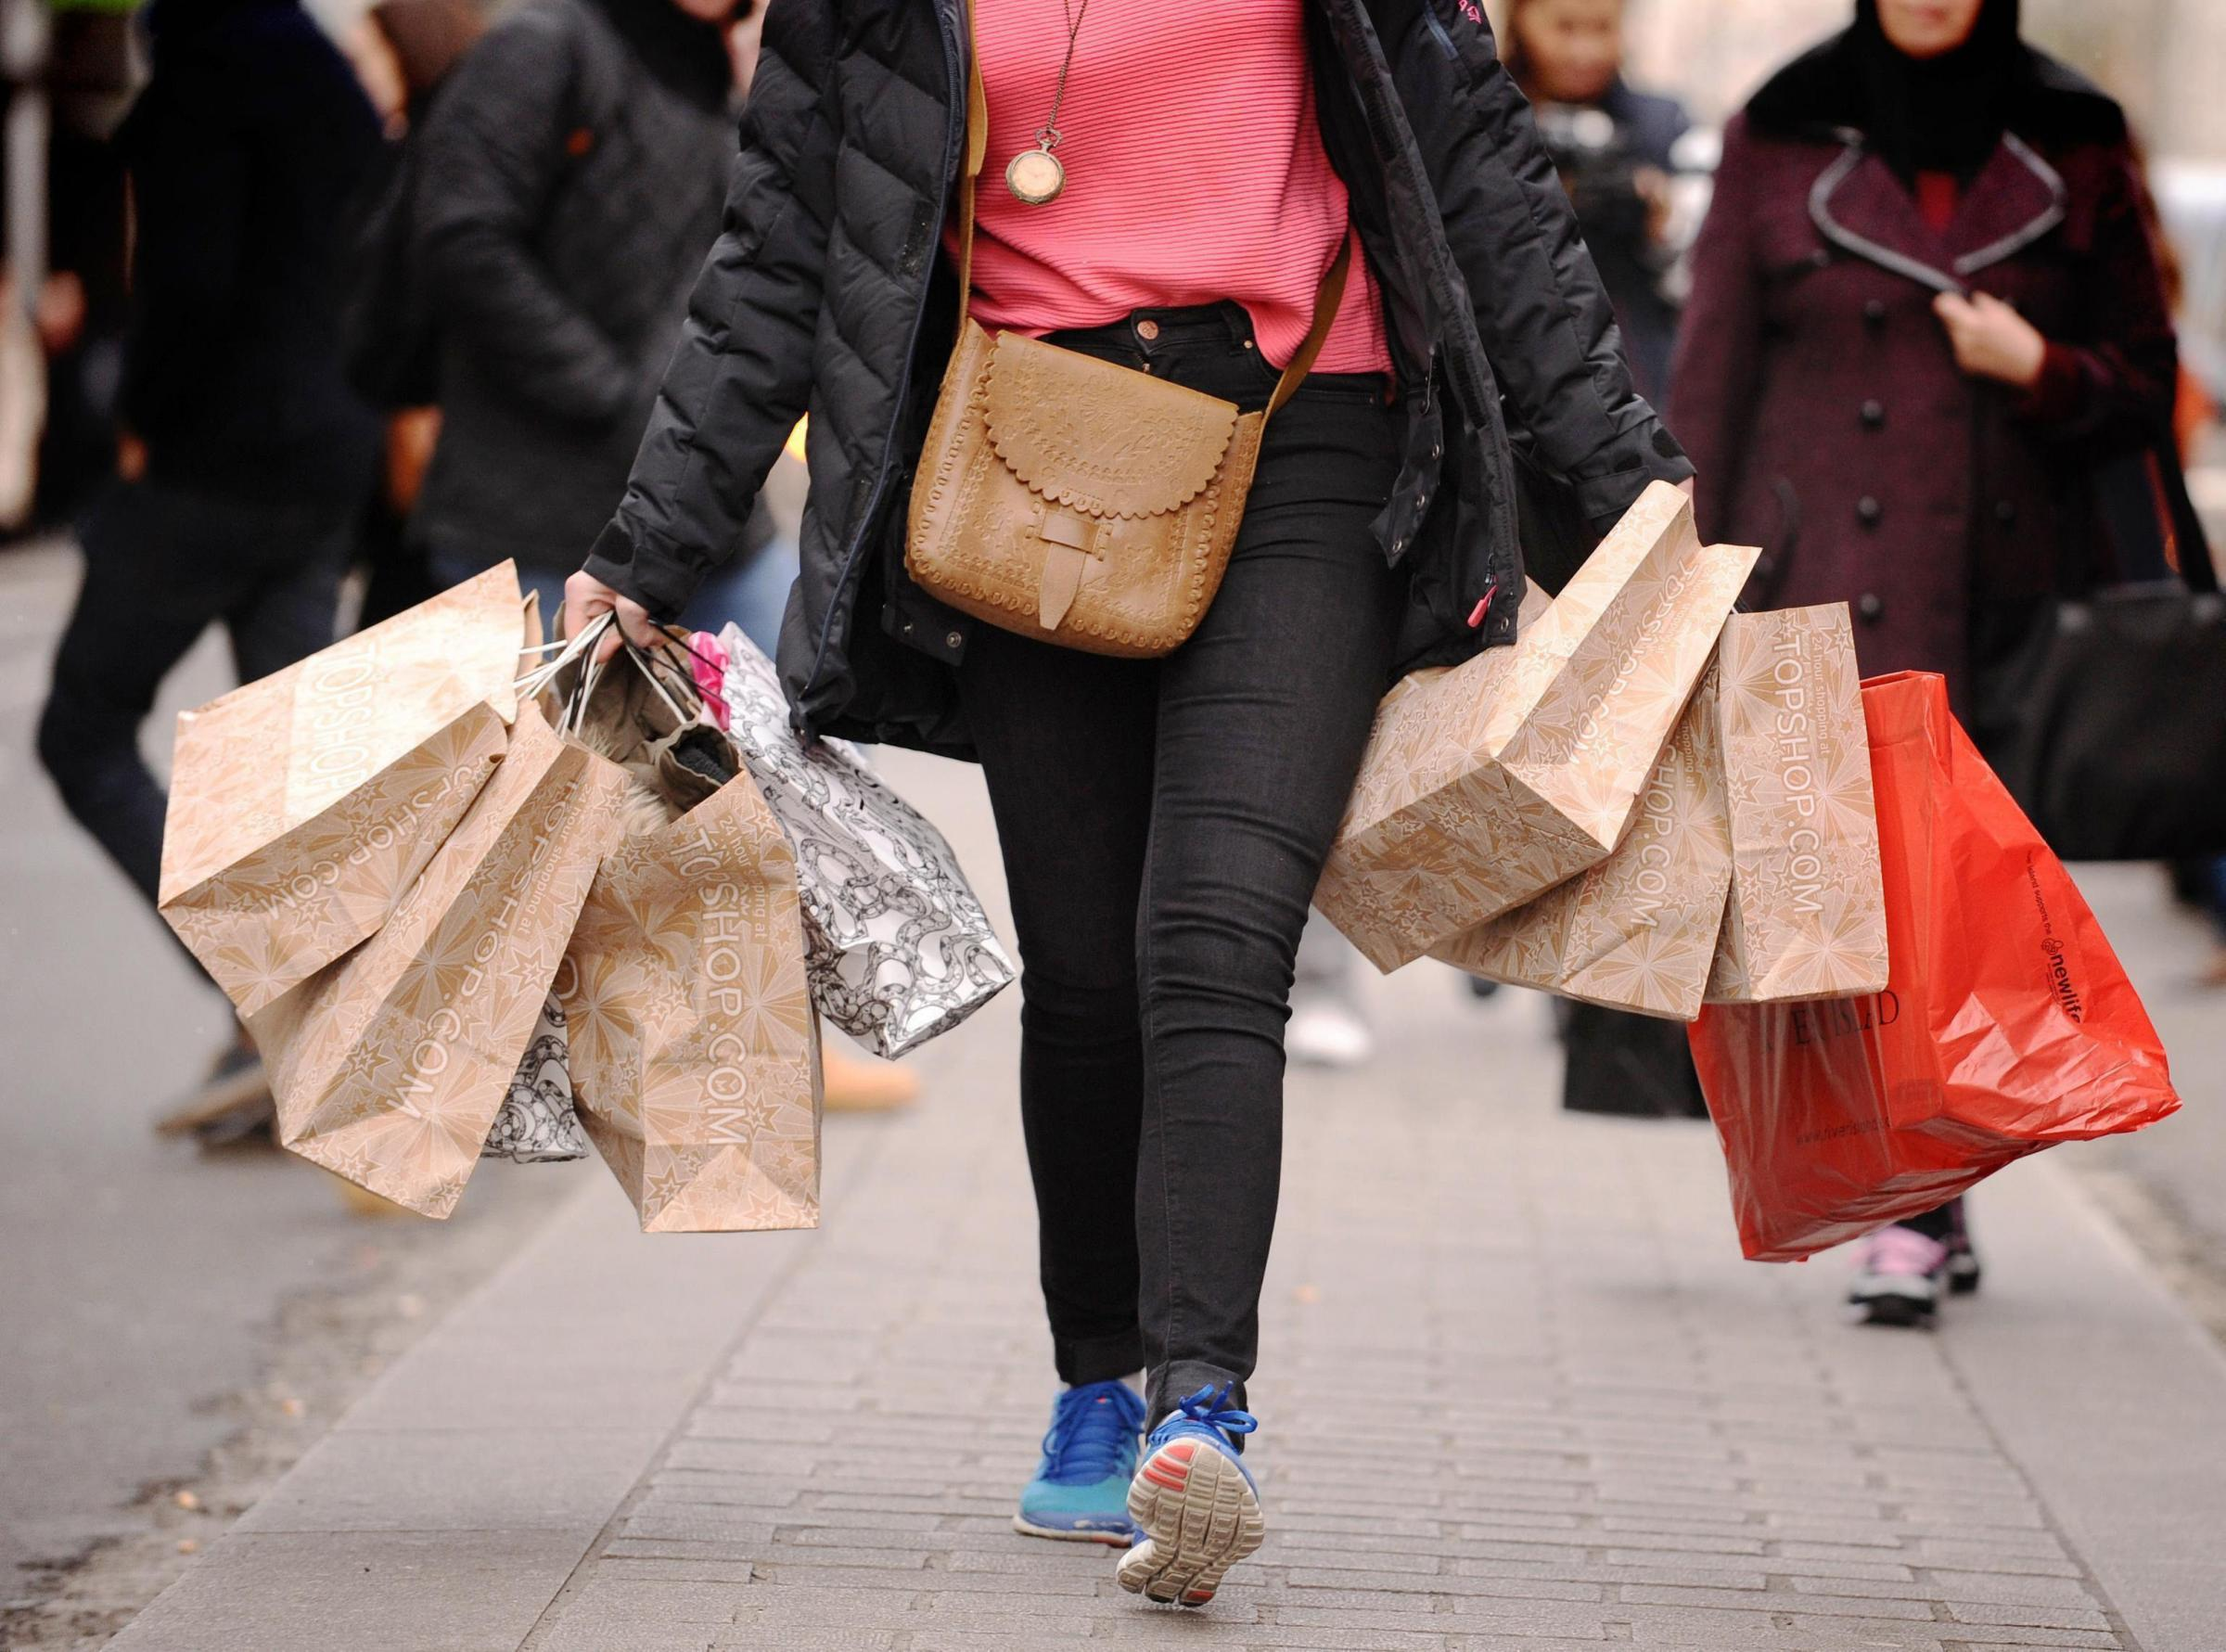 ODDS AGAINST: The Government should urgently consider an online sales tax to help secure the future of the high street, MPs have urged. Picture: DOMINIC LIPINSKI/PA WIRE